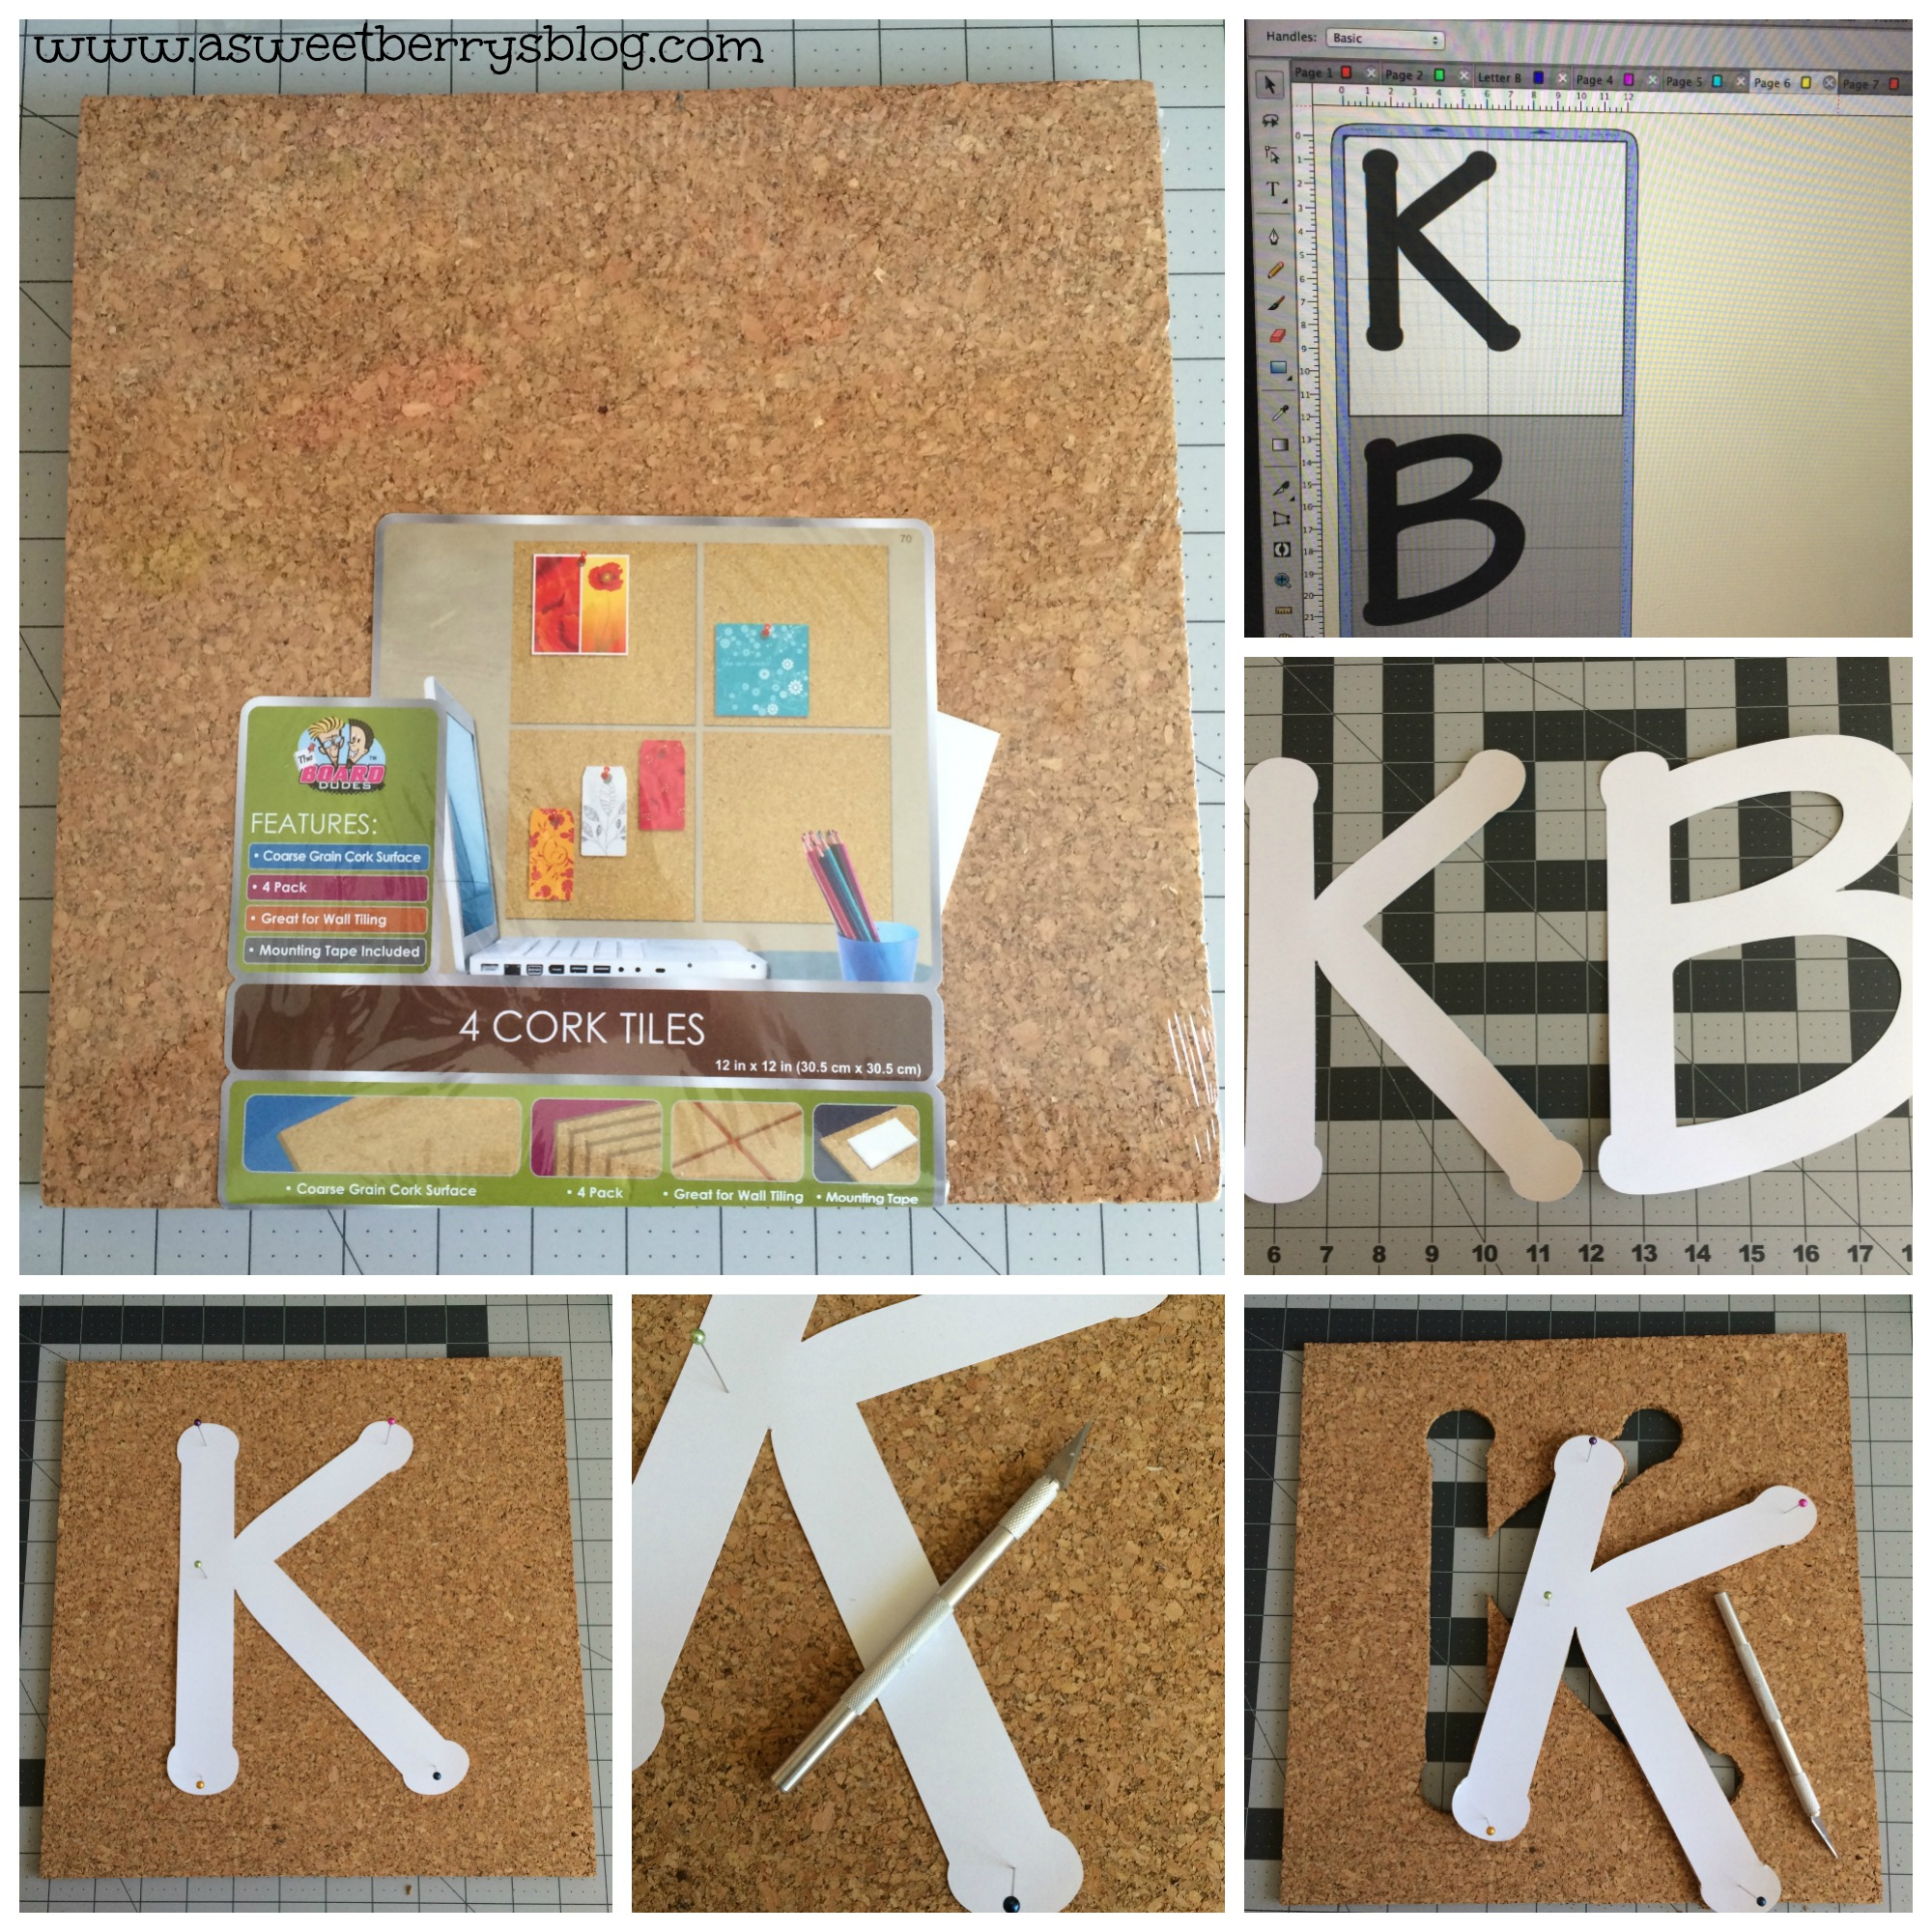 initial cork boards a sweet berry designs blog. Black Bedroom Furniture Sets. Home Design Ideas